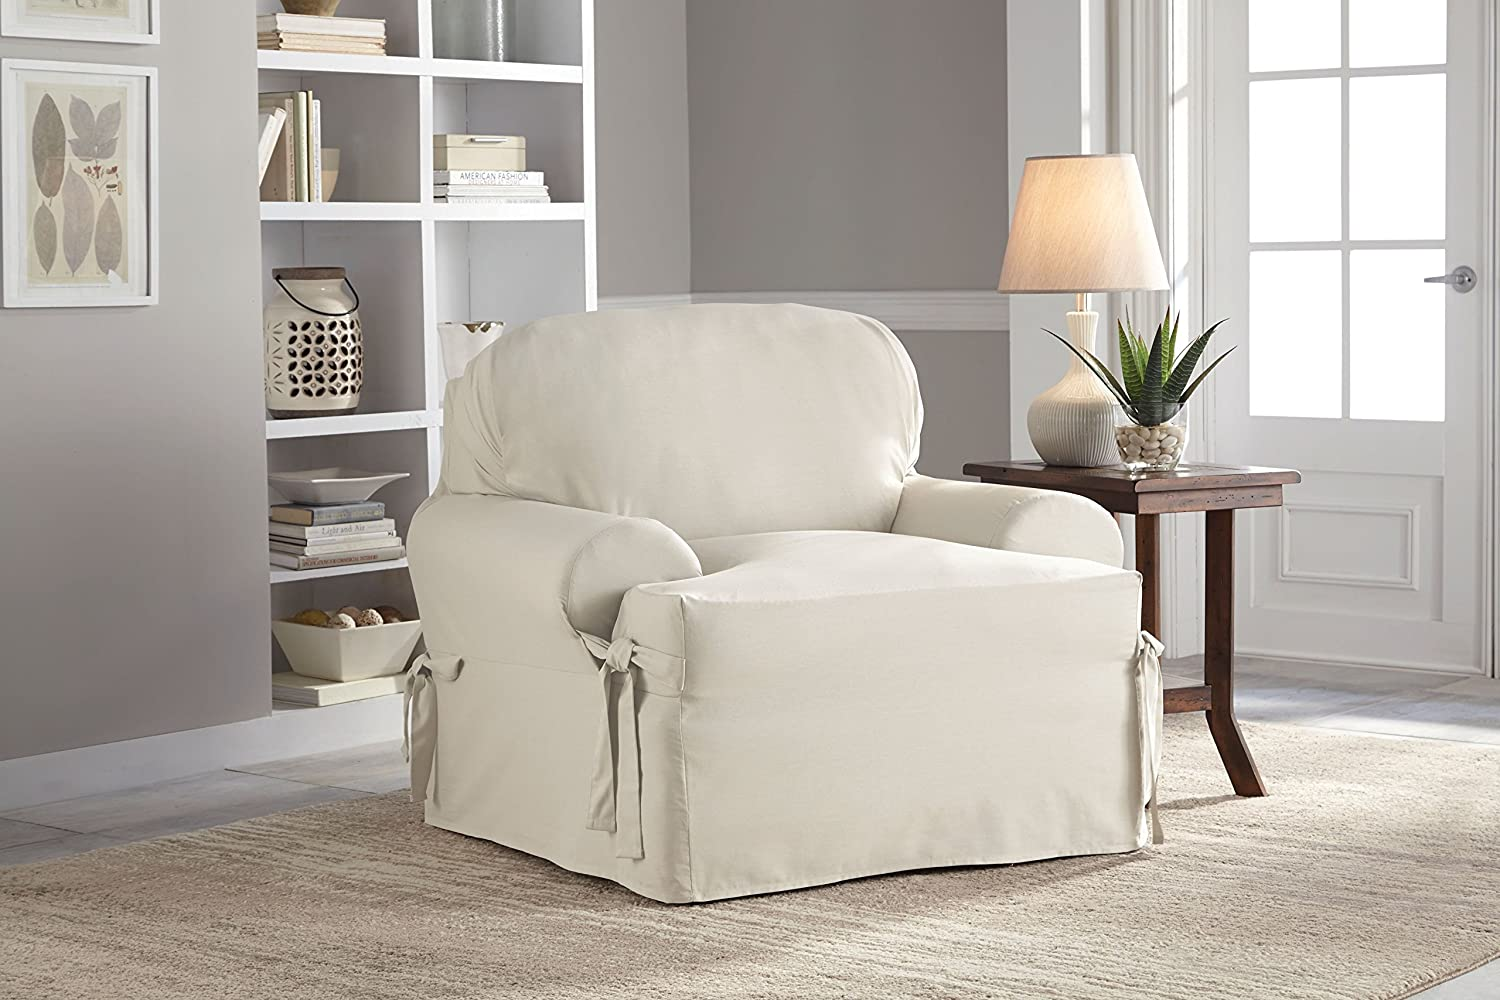 white dp amazon cotton com classic dining duck slipcovers long csi kitchen slipcover home chair